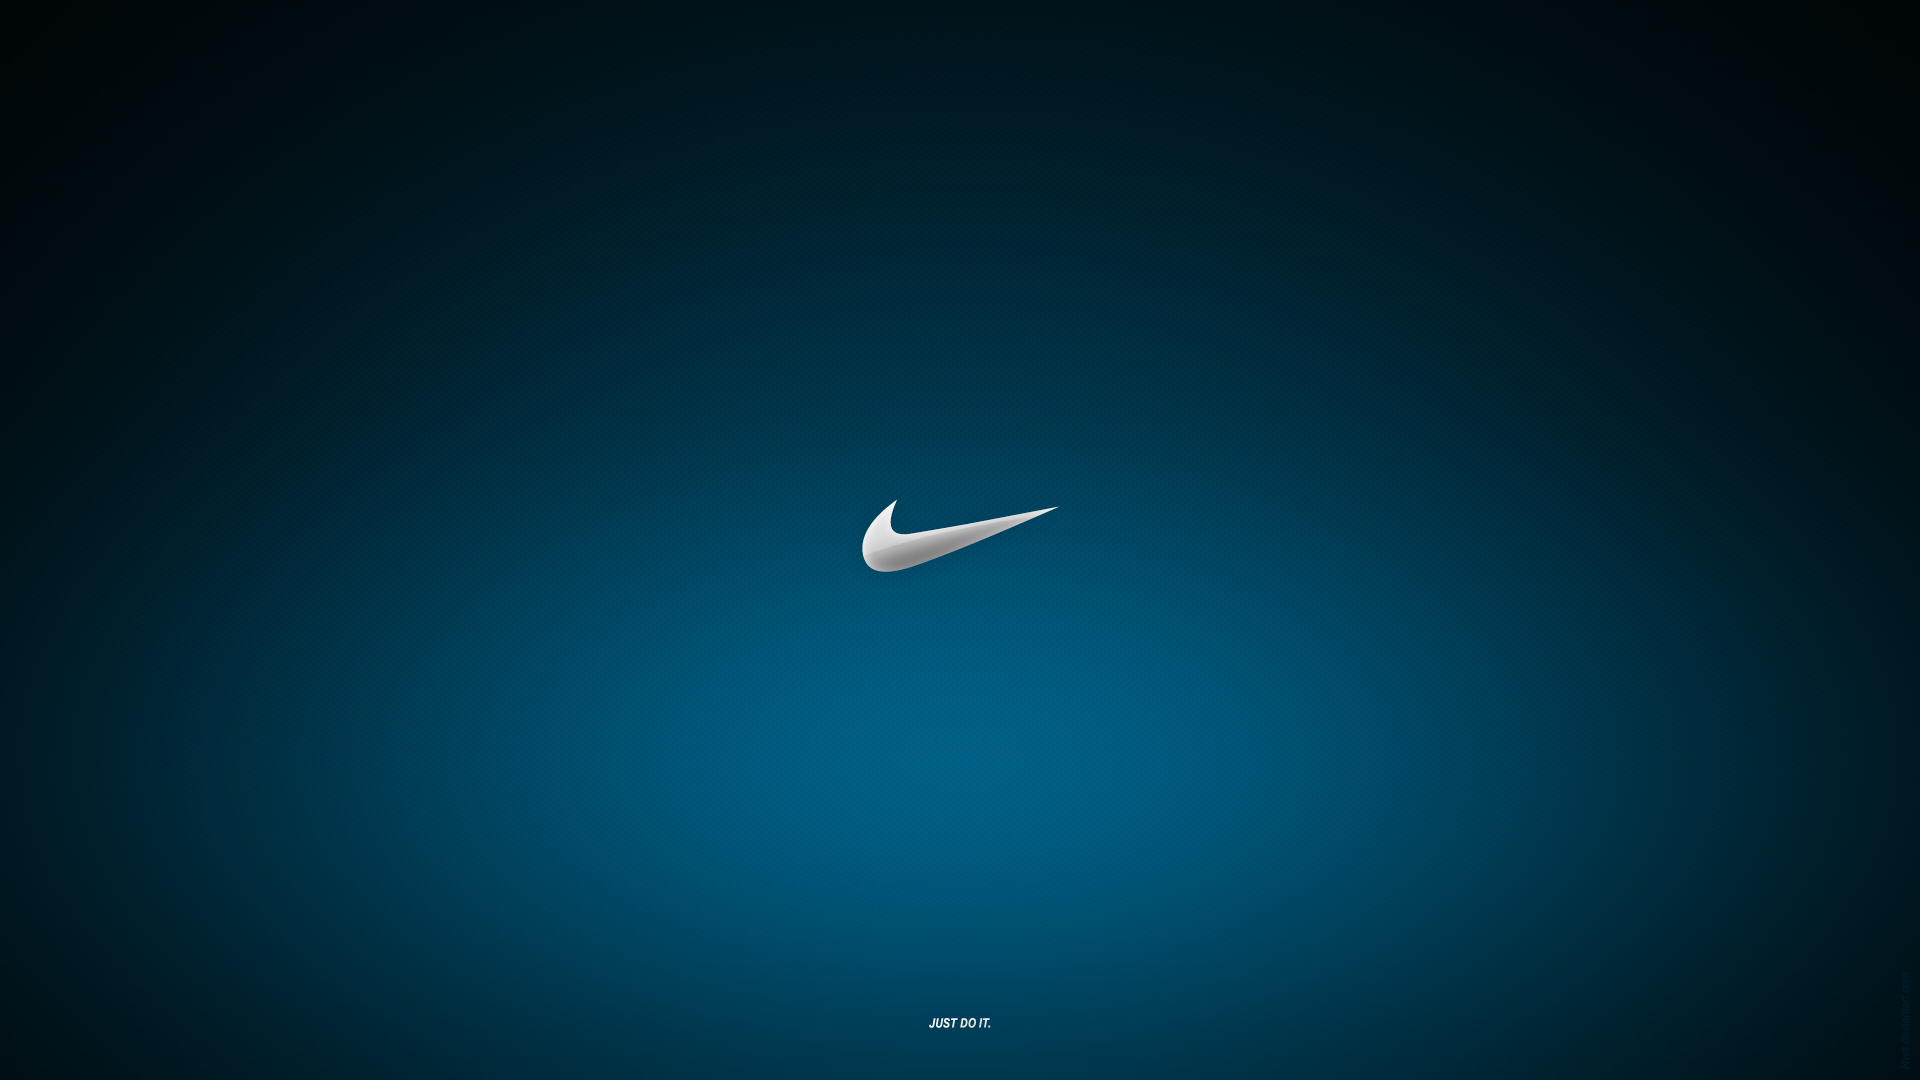 42 Nike Wallpaper Hd 1080p On Wallpapersafari